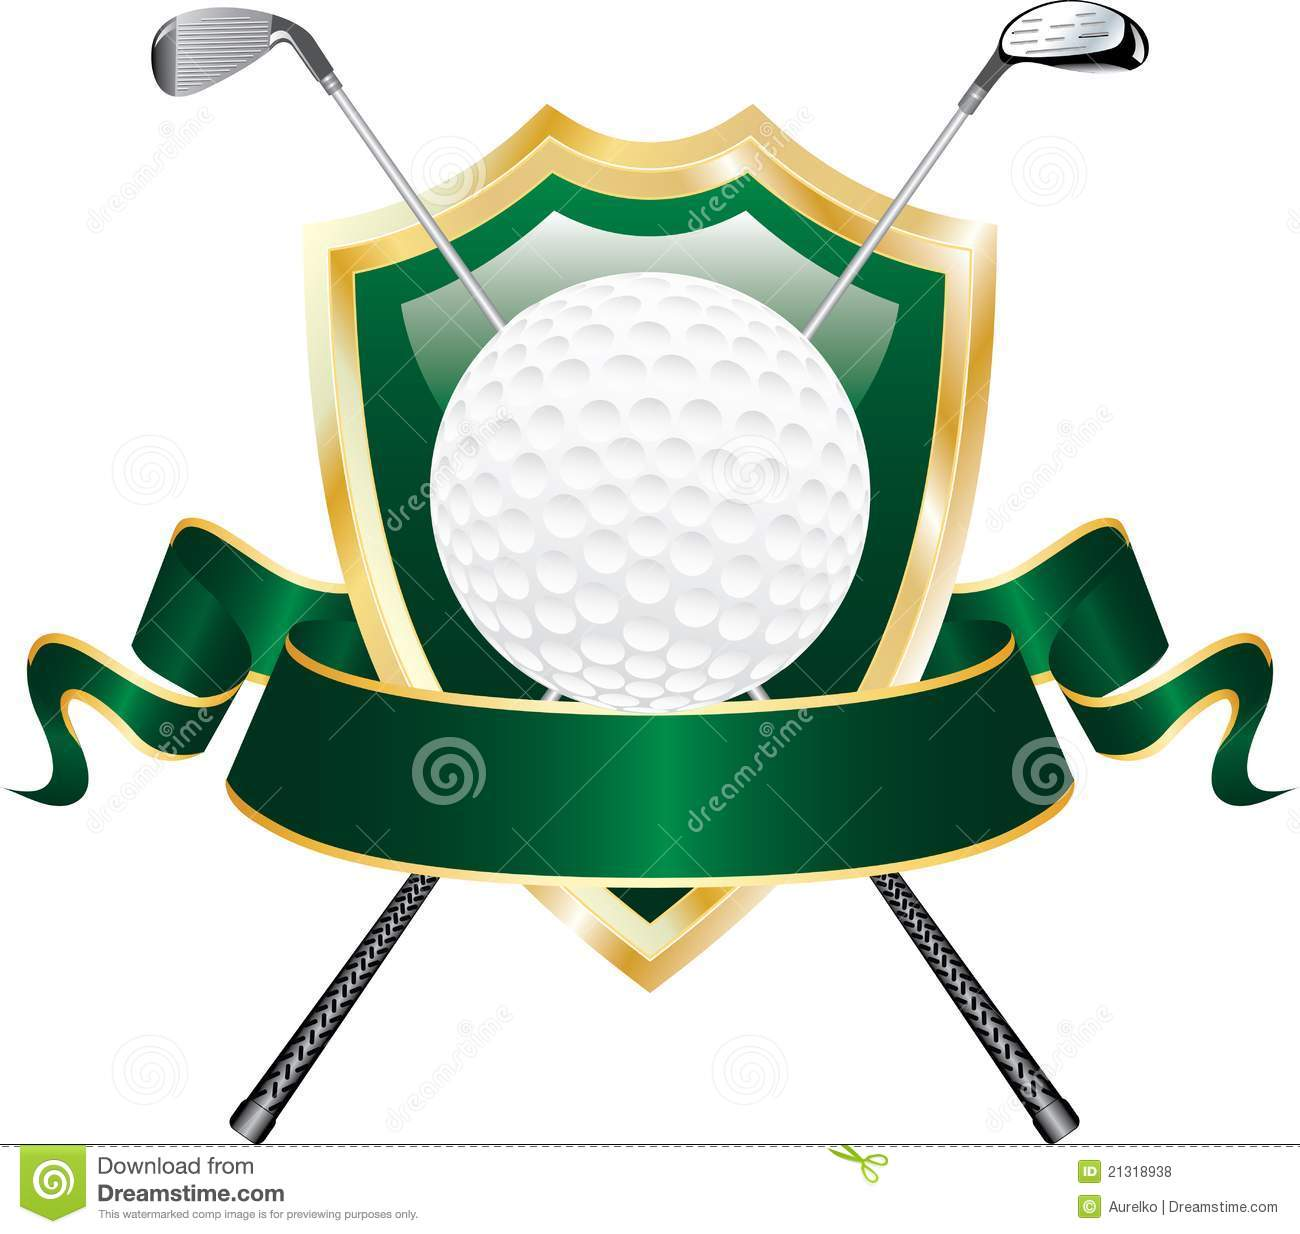 Golf images free clipart picture royalty free download Free Clipart Golf | Free download best Free Clipart Golf on ... picture royalty free download